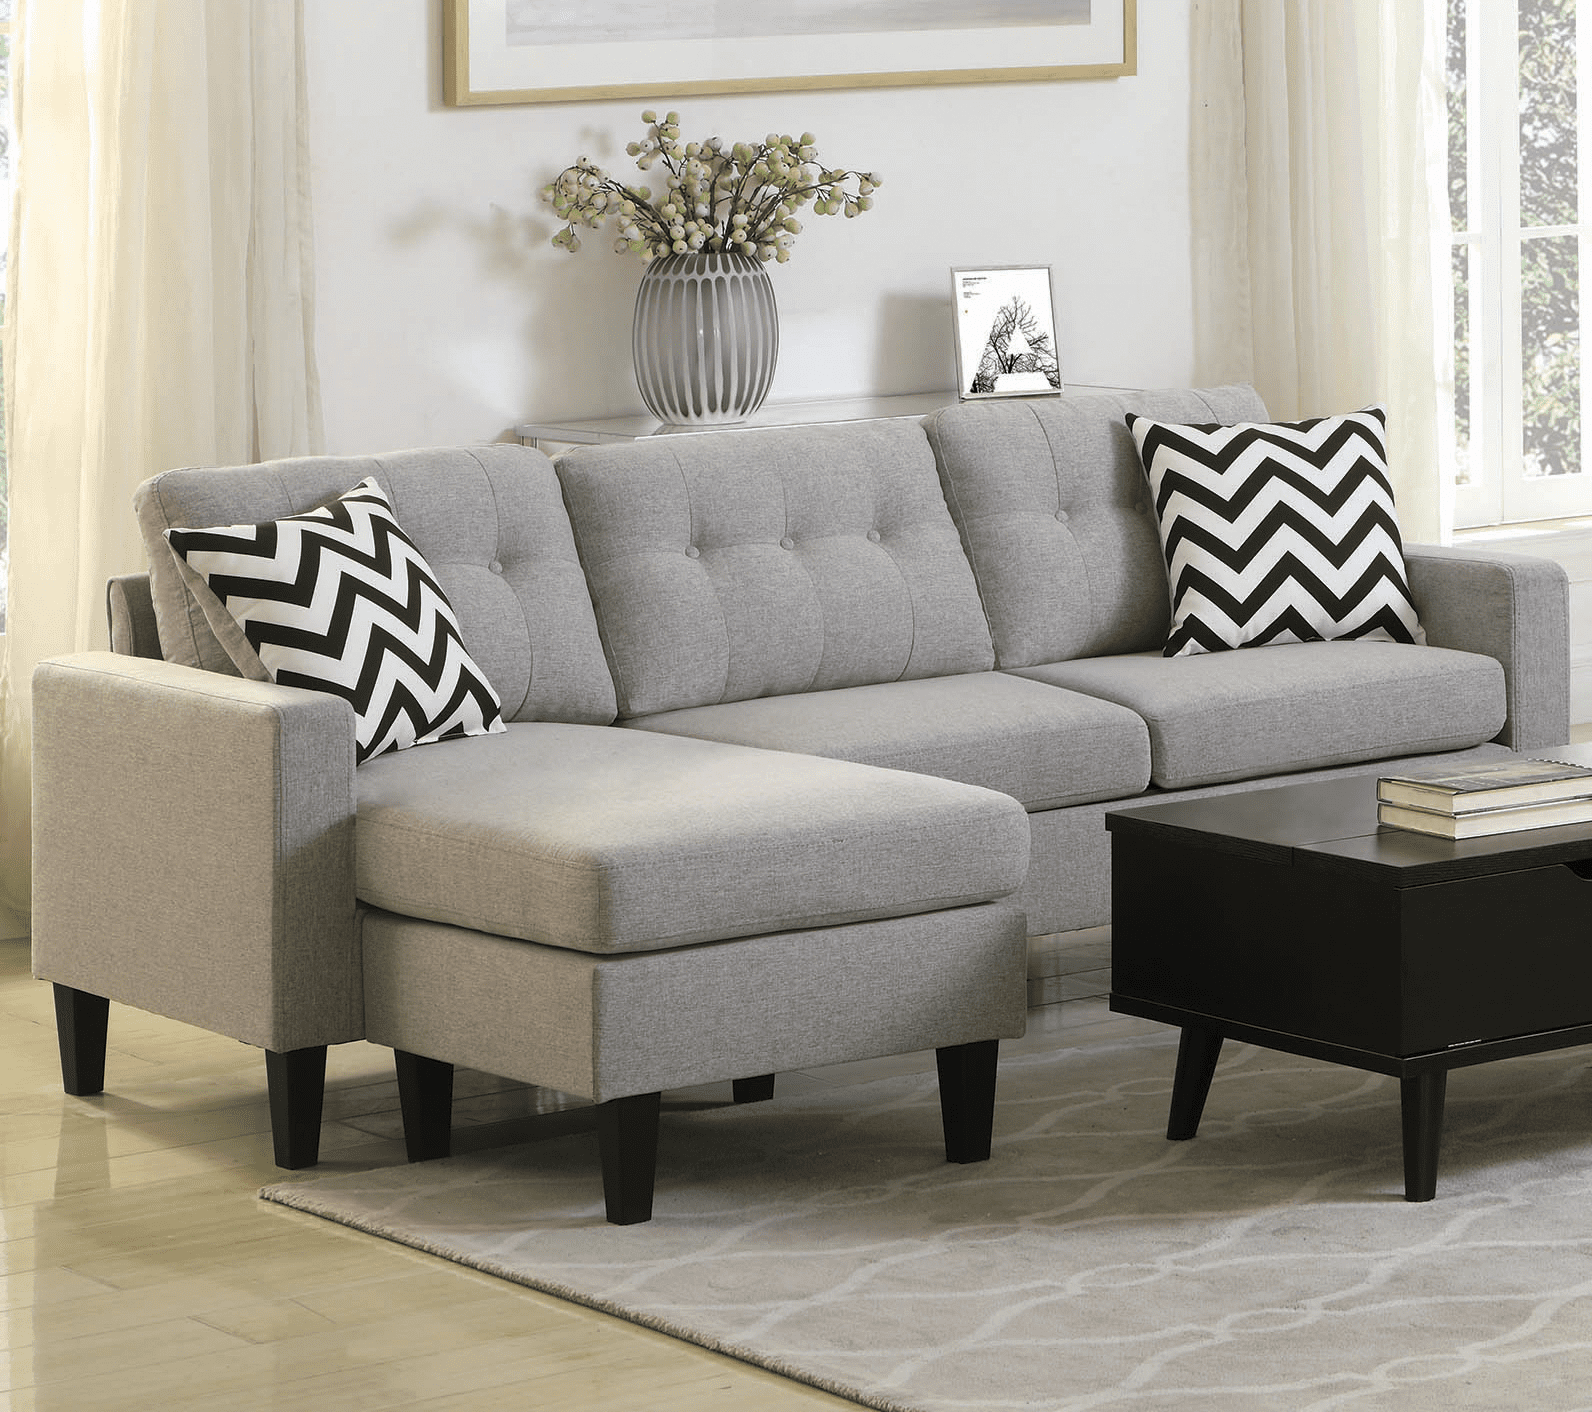 small sectional sofa for a small space